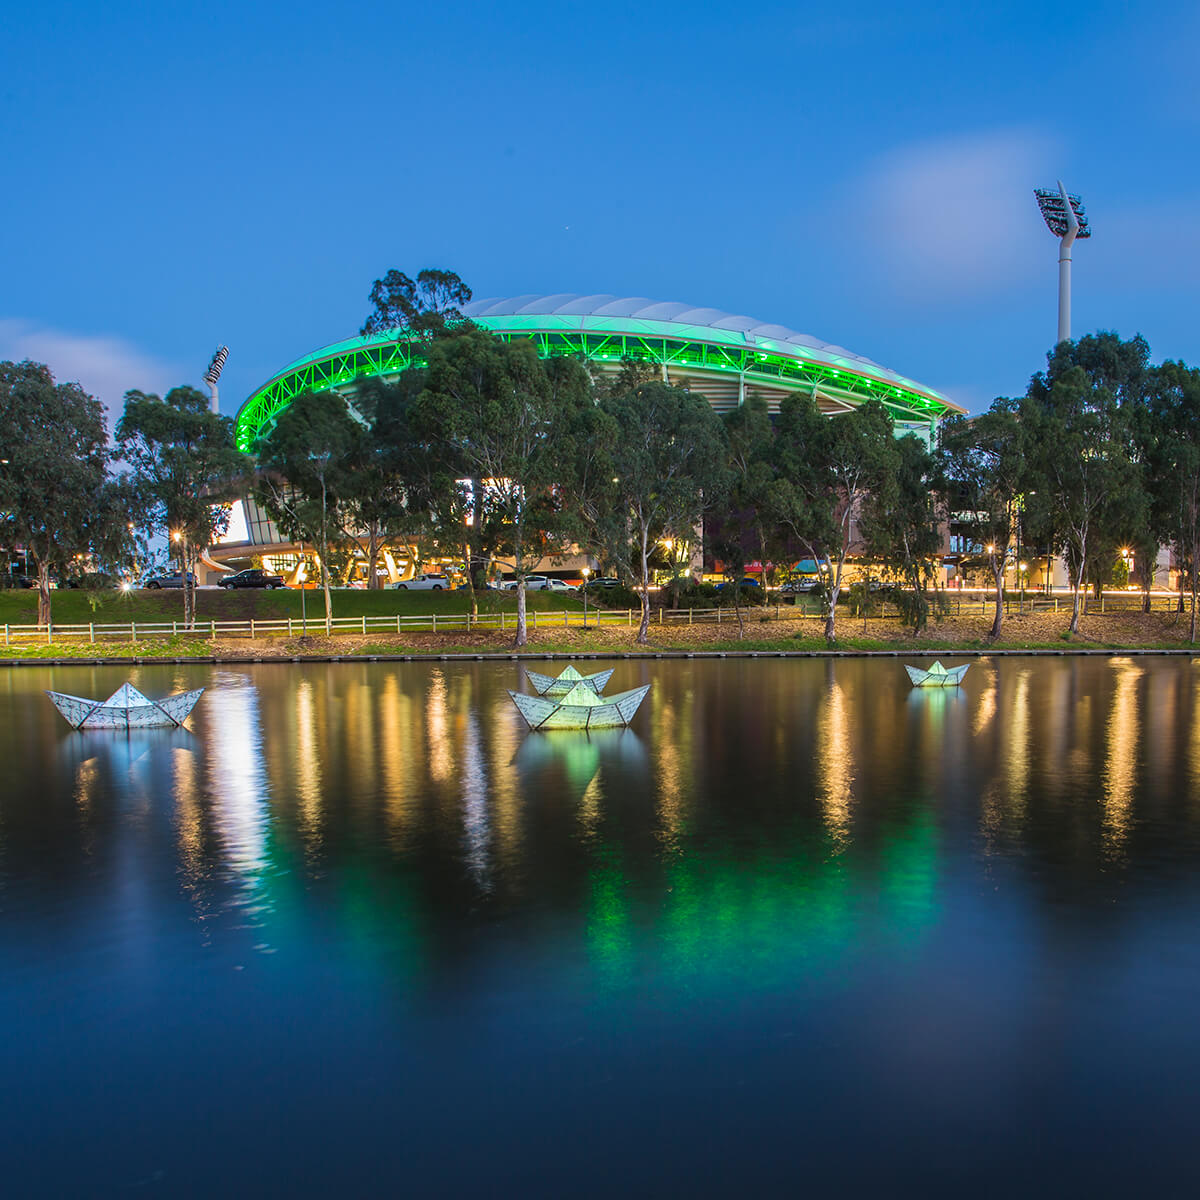 Image of Adelaide Oval